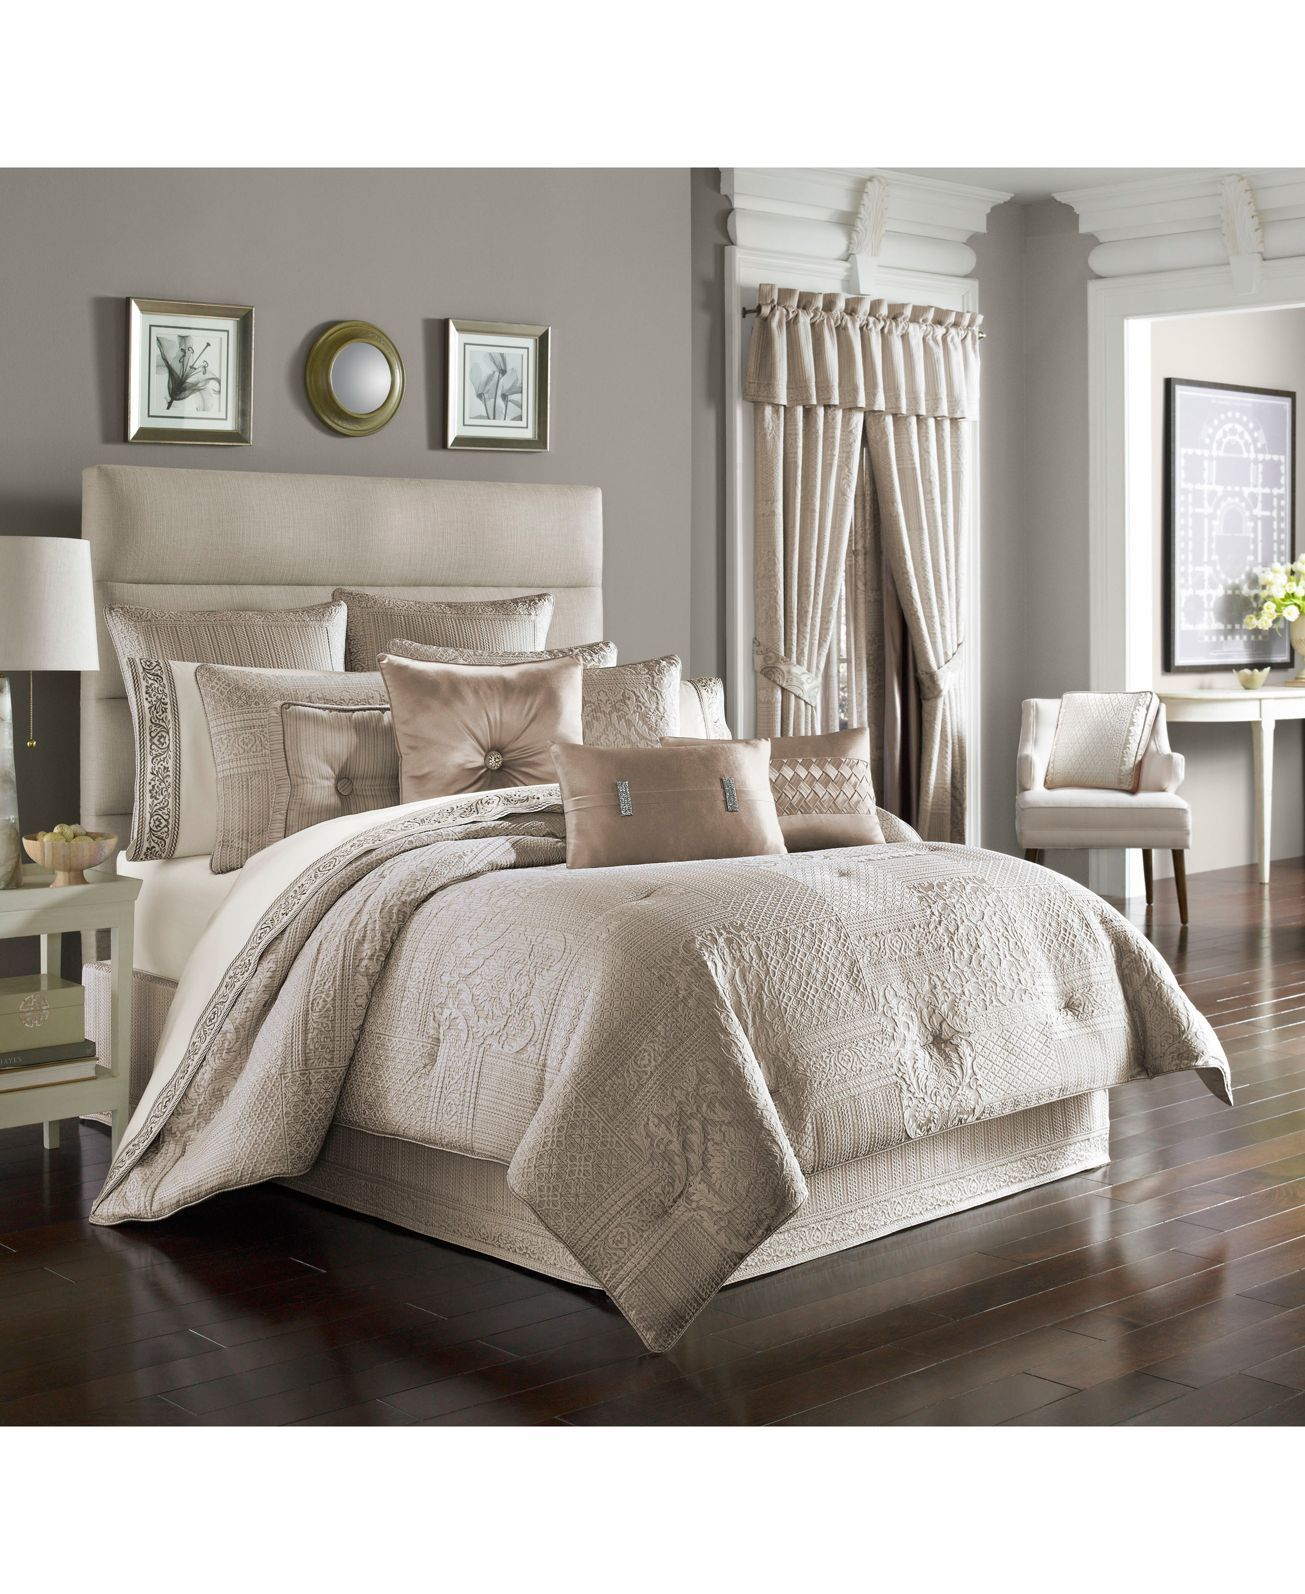 A Rich Neutral Alabaster Tone Brings Style And Elegance To The Wilmington King Comforter Set From J Queen Beige Comforter Luxury Bedding Luxury Comforter Sets